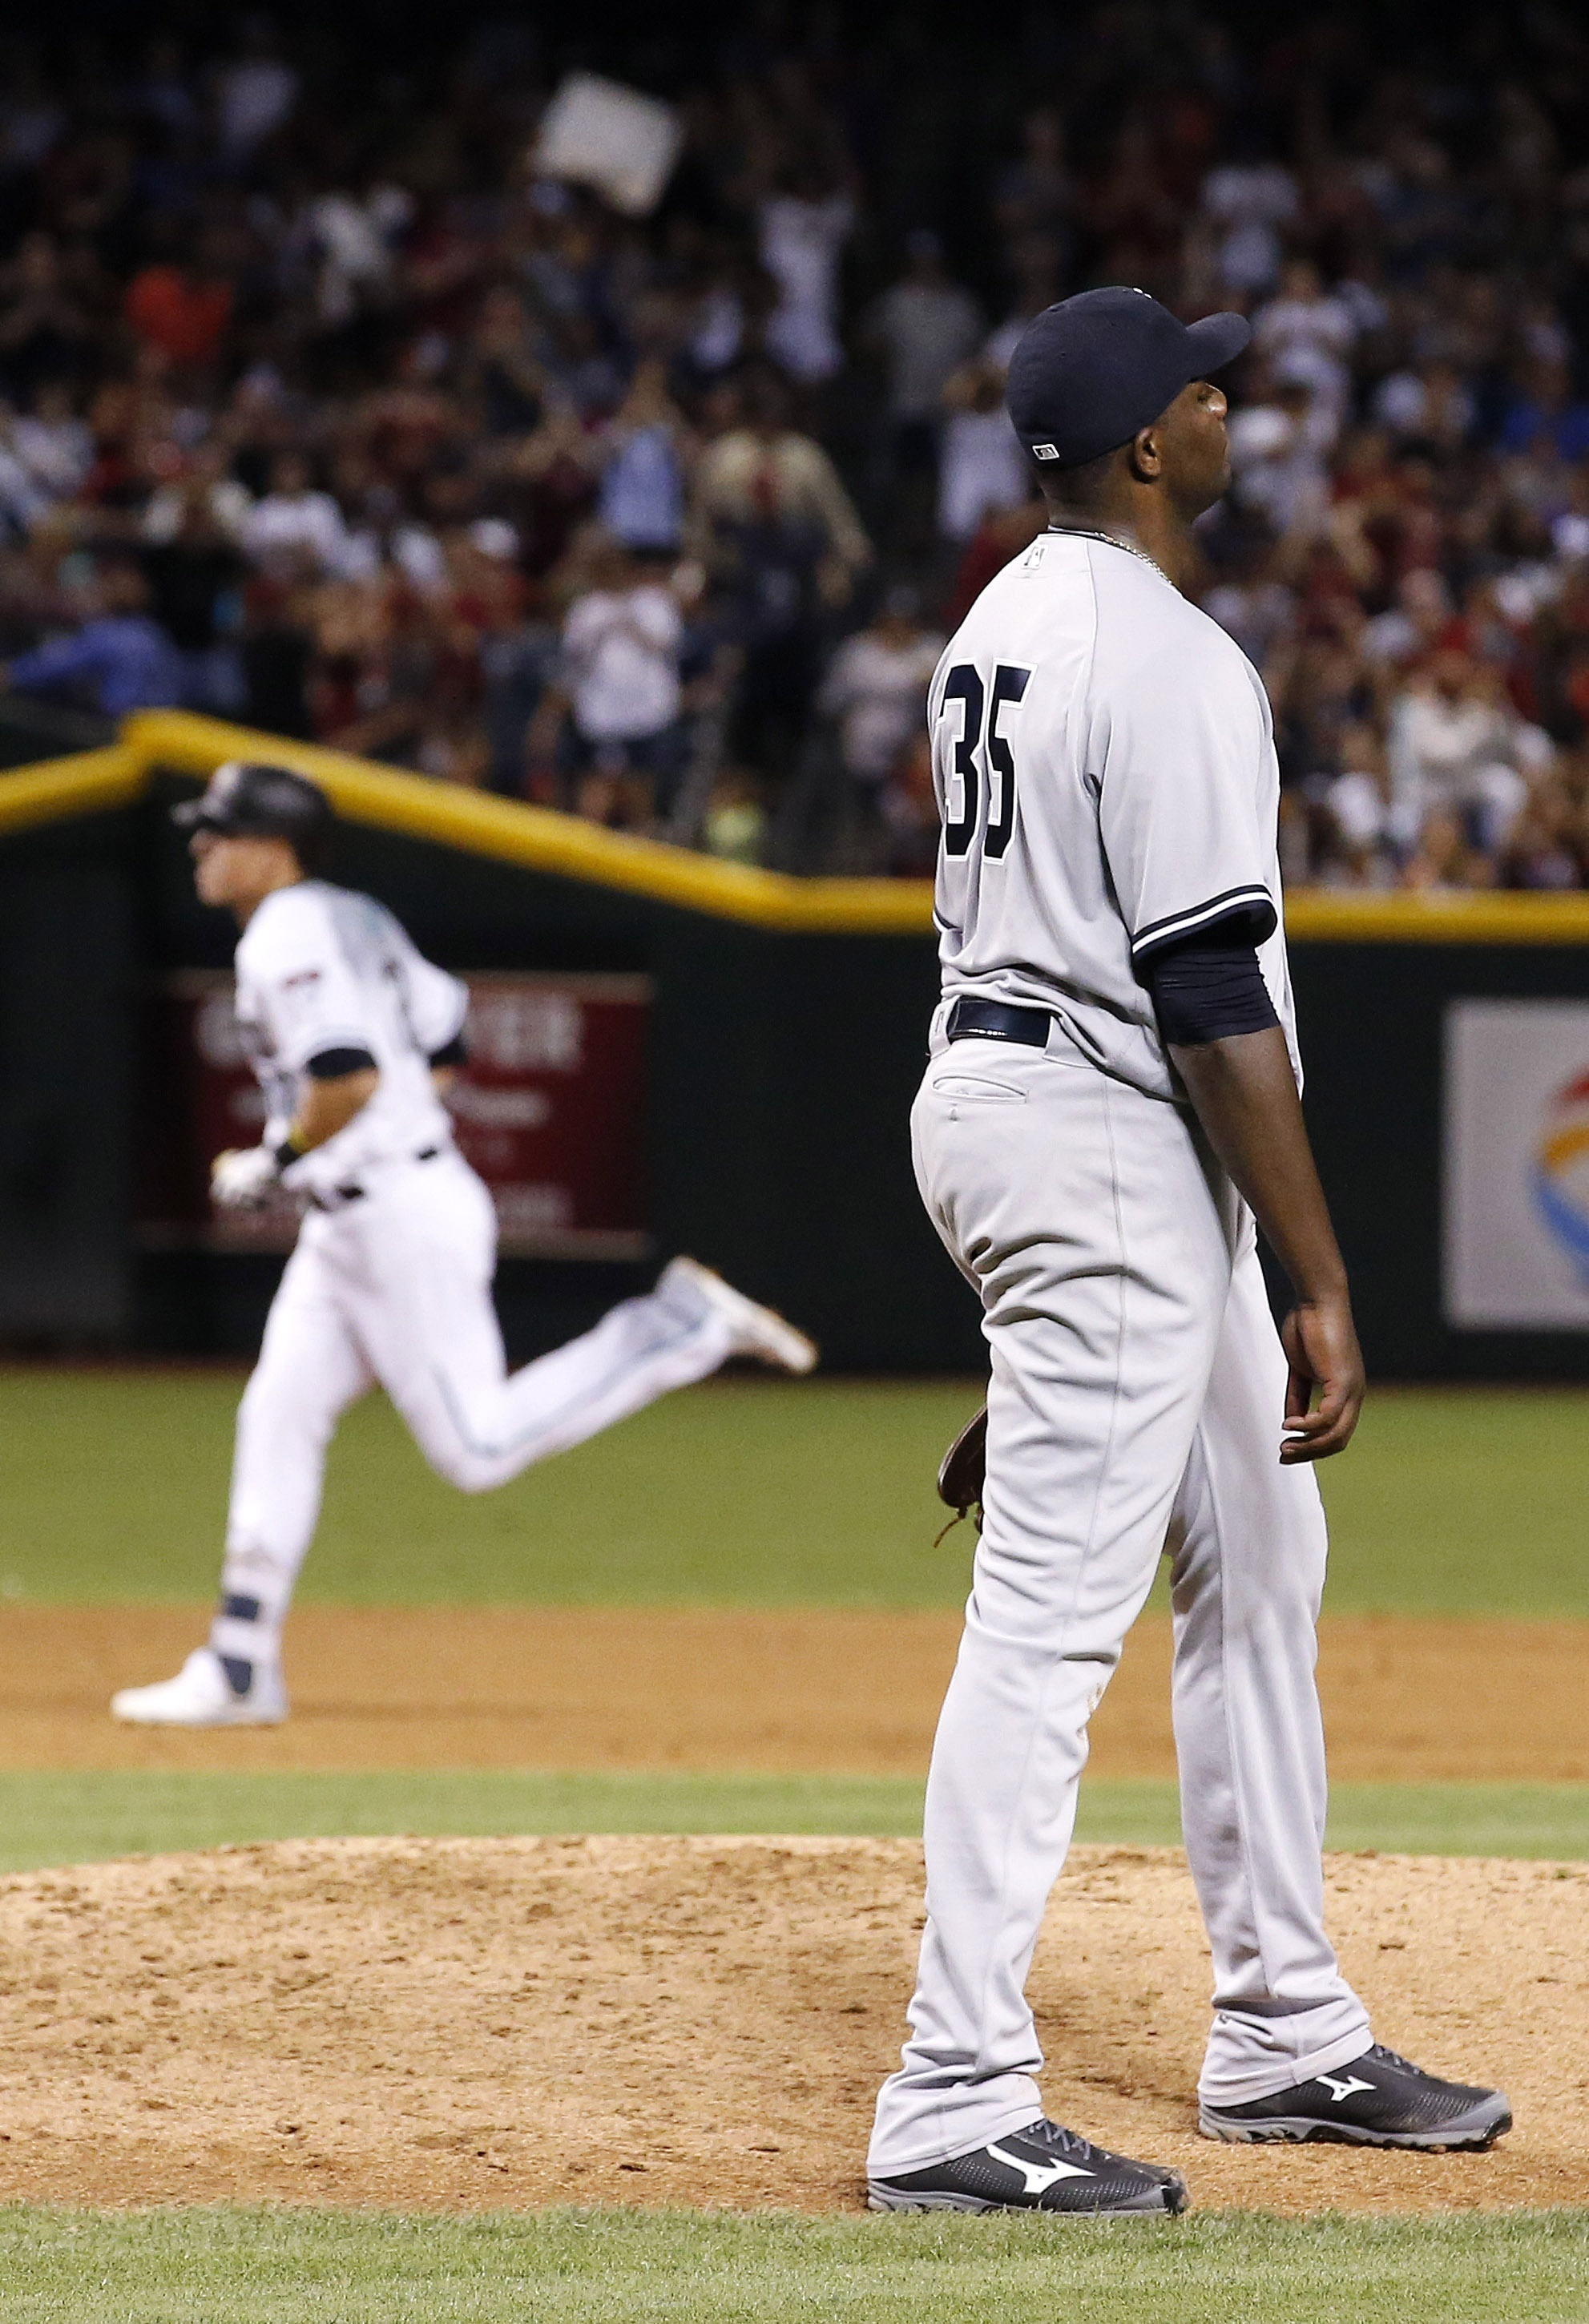 New York Yankees' Michael Pineda (35) pauses at the mound after giving up a two-run home run to Arizona Diamondbacks' Jake Lamb, rear, during the fifth inning of a baseball game Tuesday, May 17, 2016, in Phoenix. (AP Photo/Ross D. Franklin)